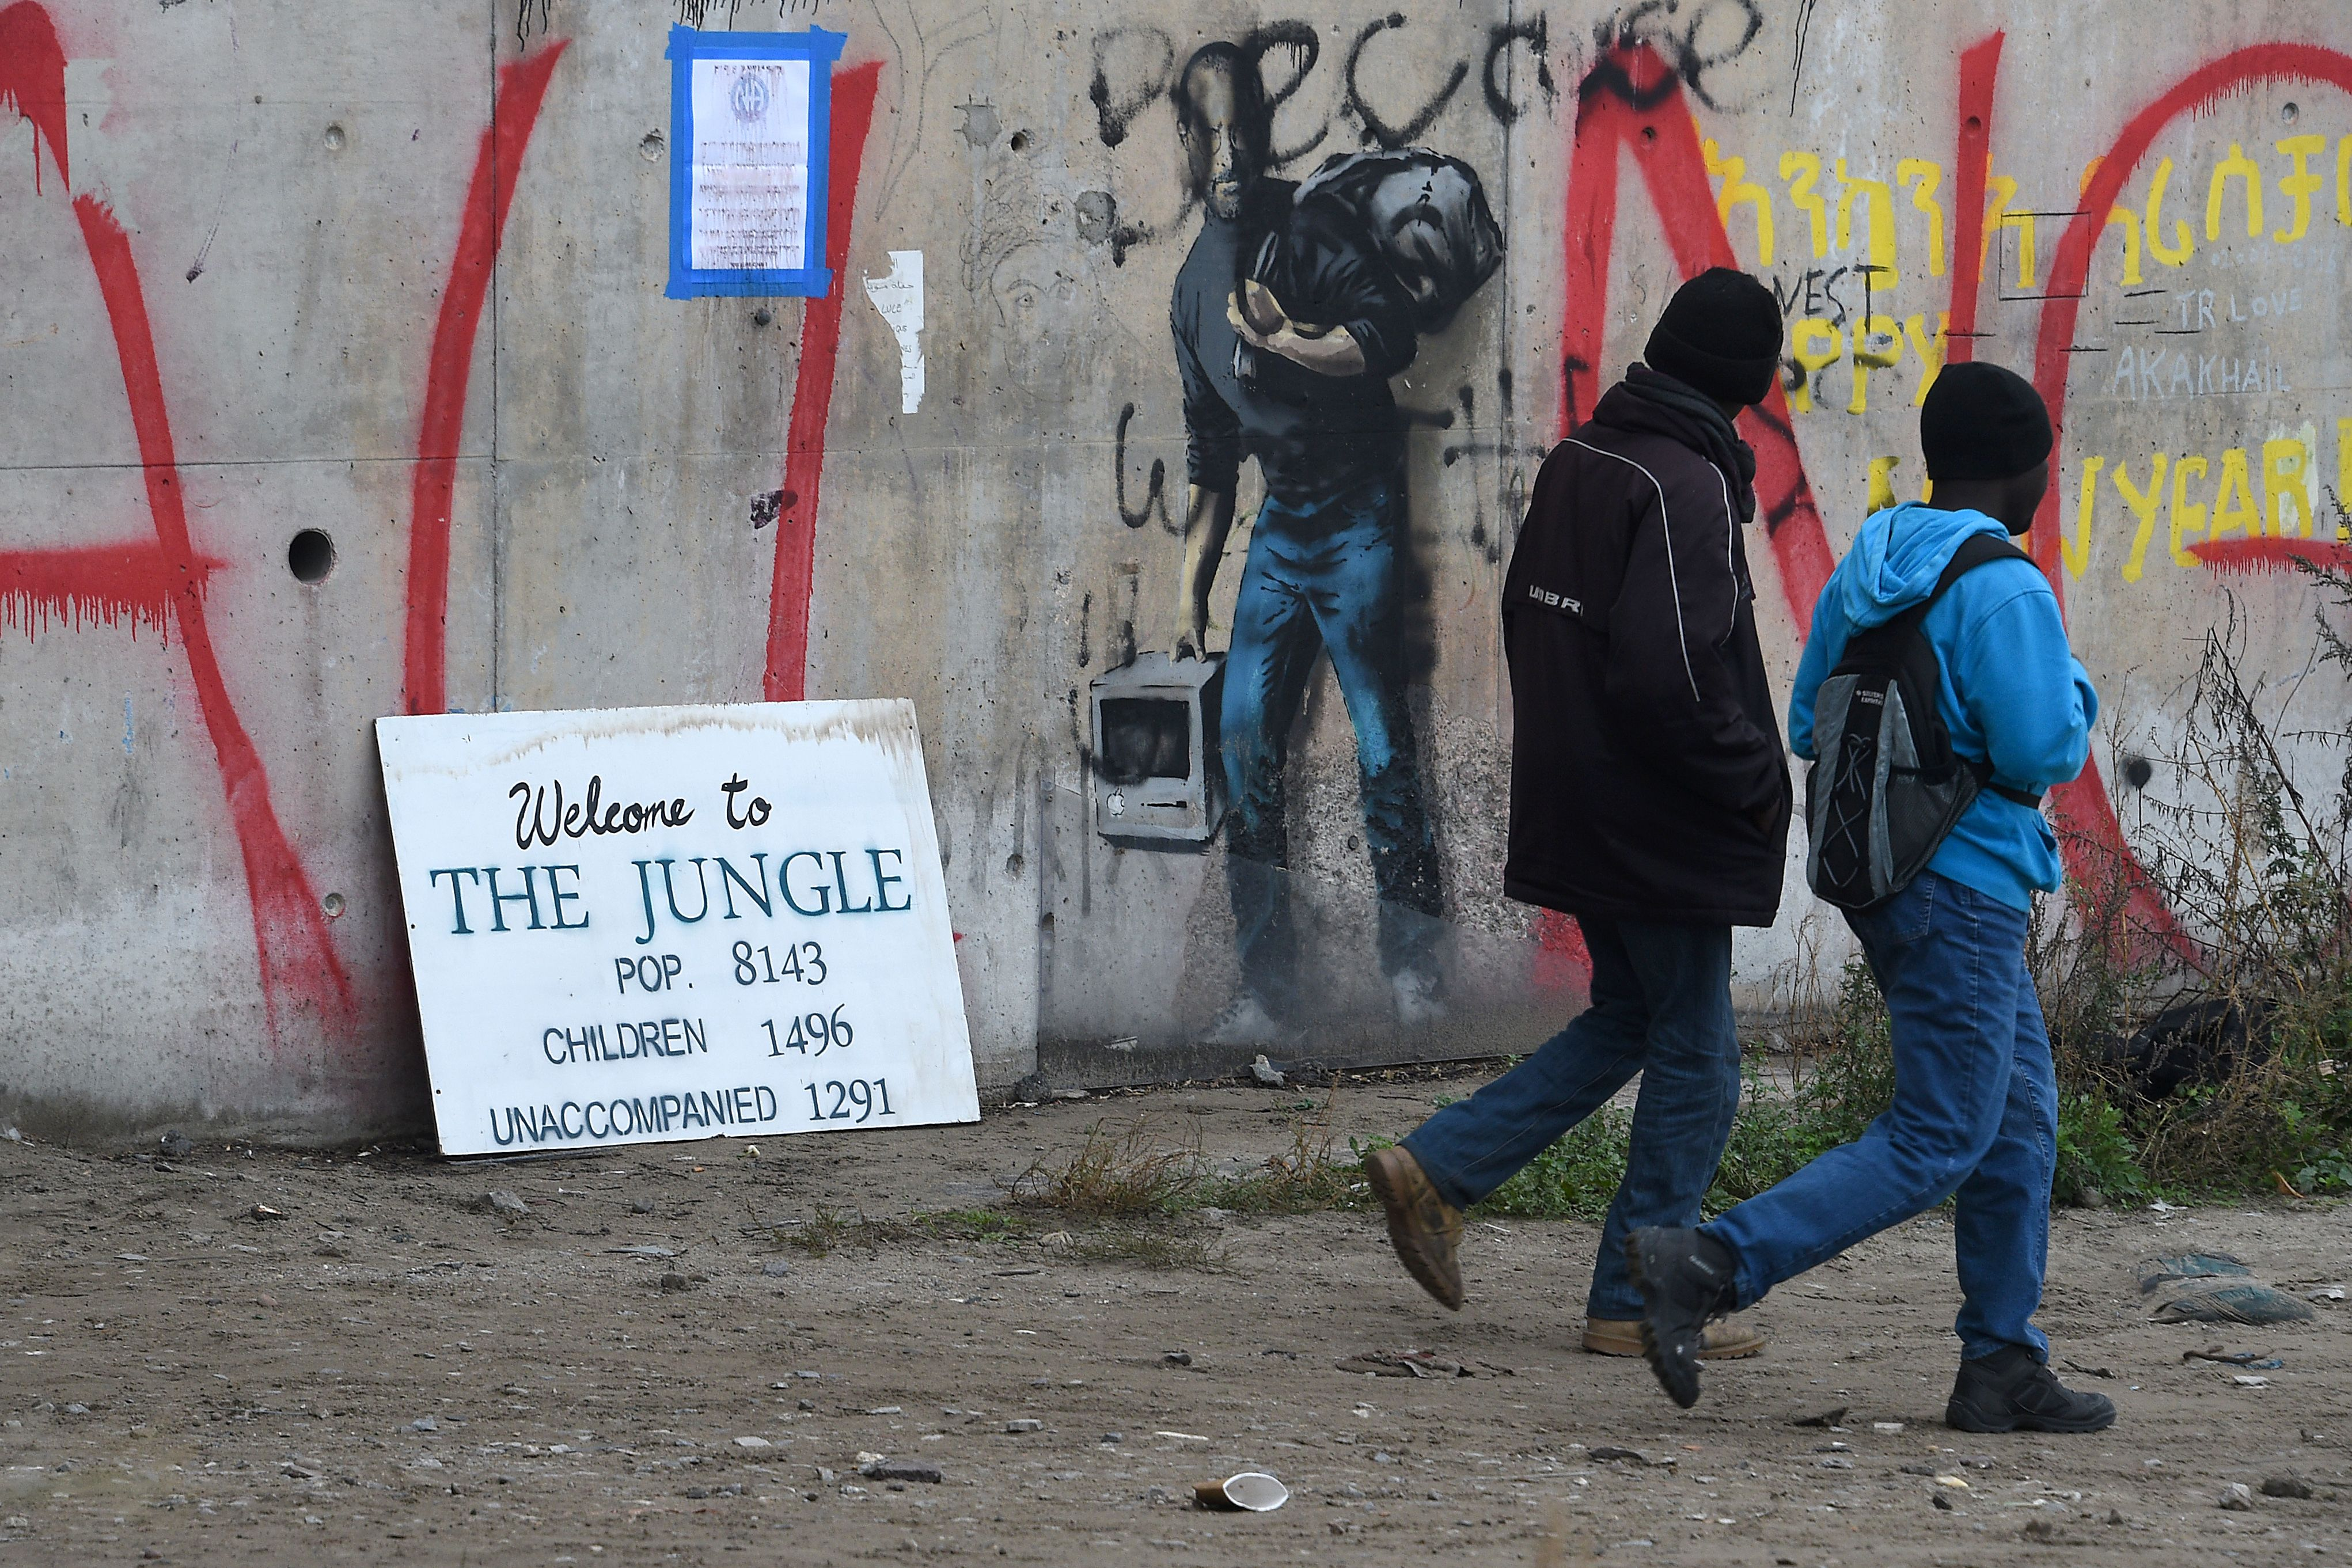 Migrants walk past a graffiti by street artist Banksy representing Apple founder Steve Jobs as a migrant during the full evacuation of the Calais  Jungle  camp, in Calais, northern France, on October 24, 2016.